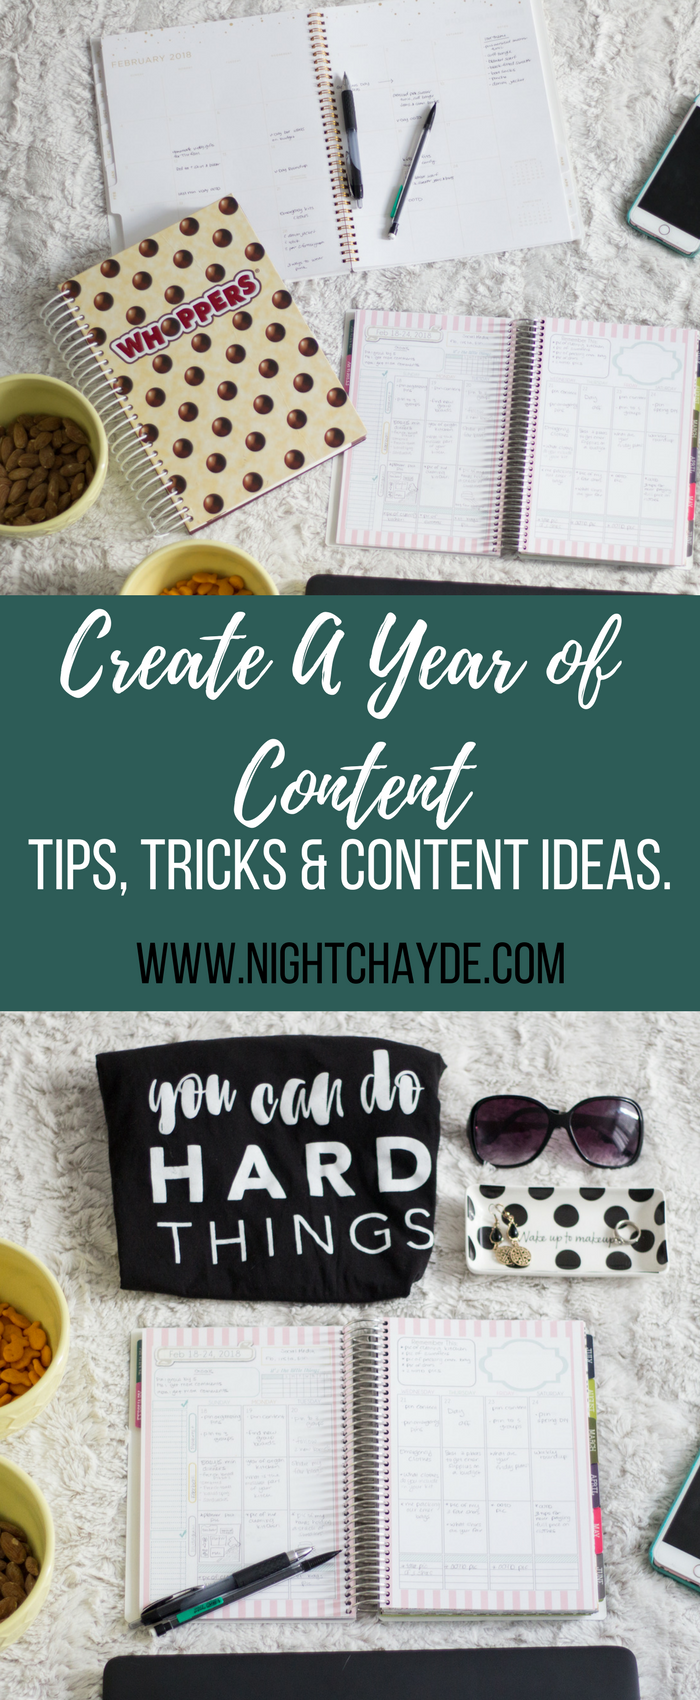 Create A Year of Content